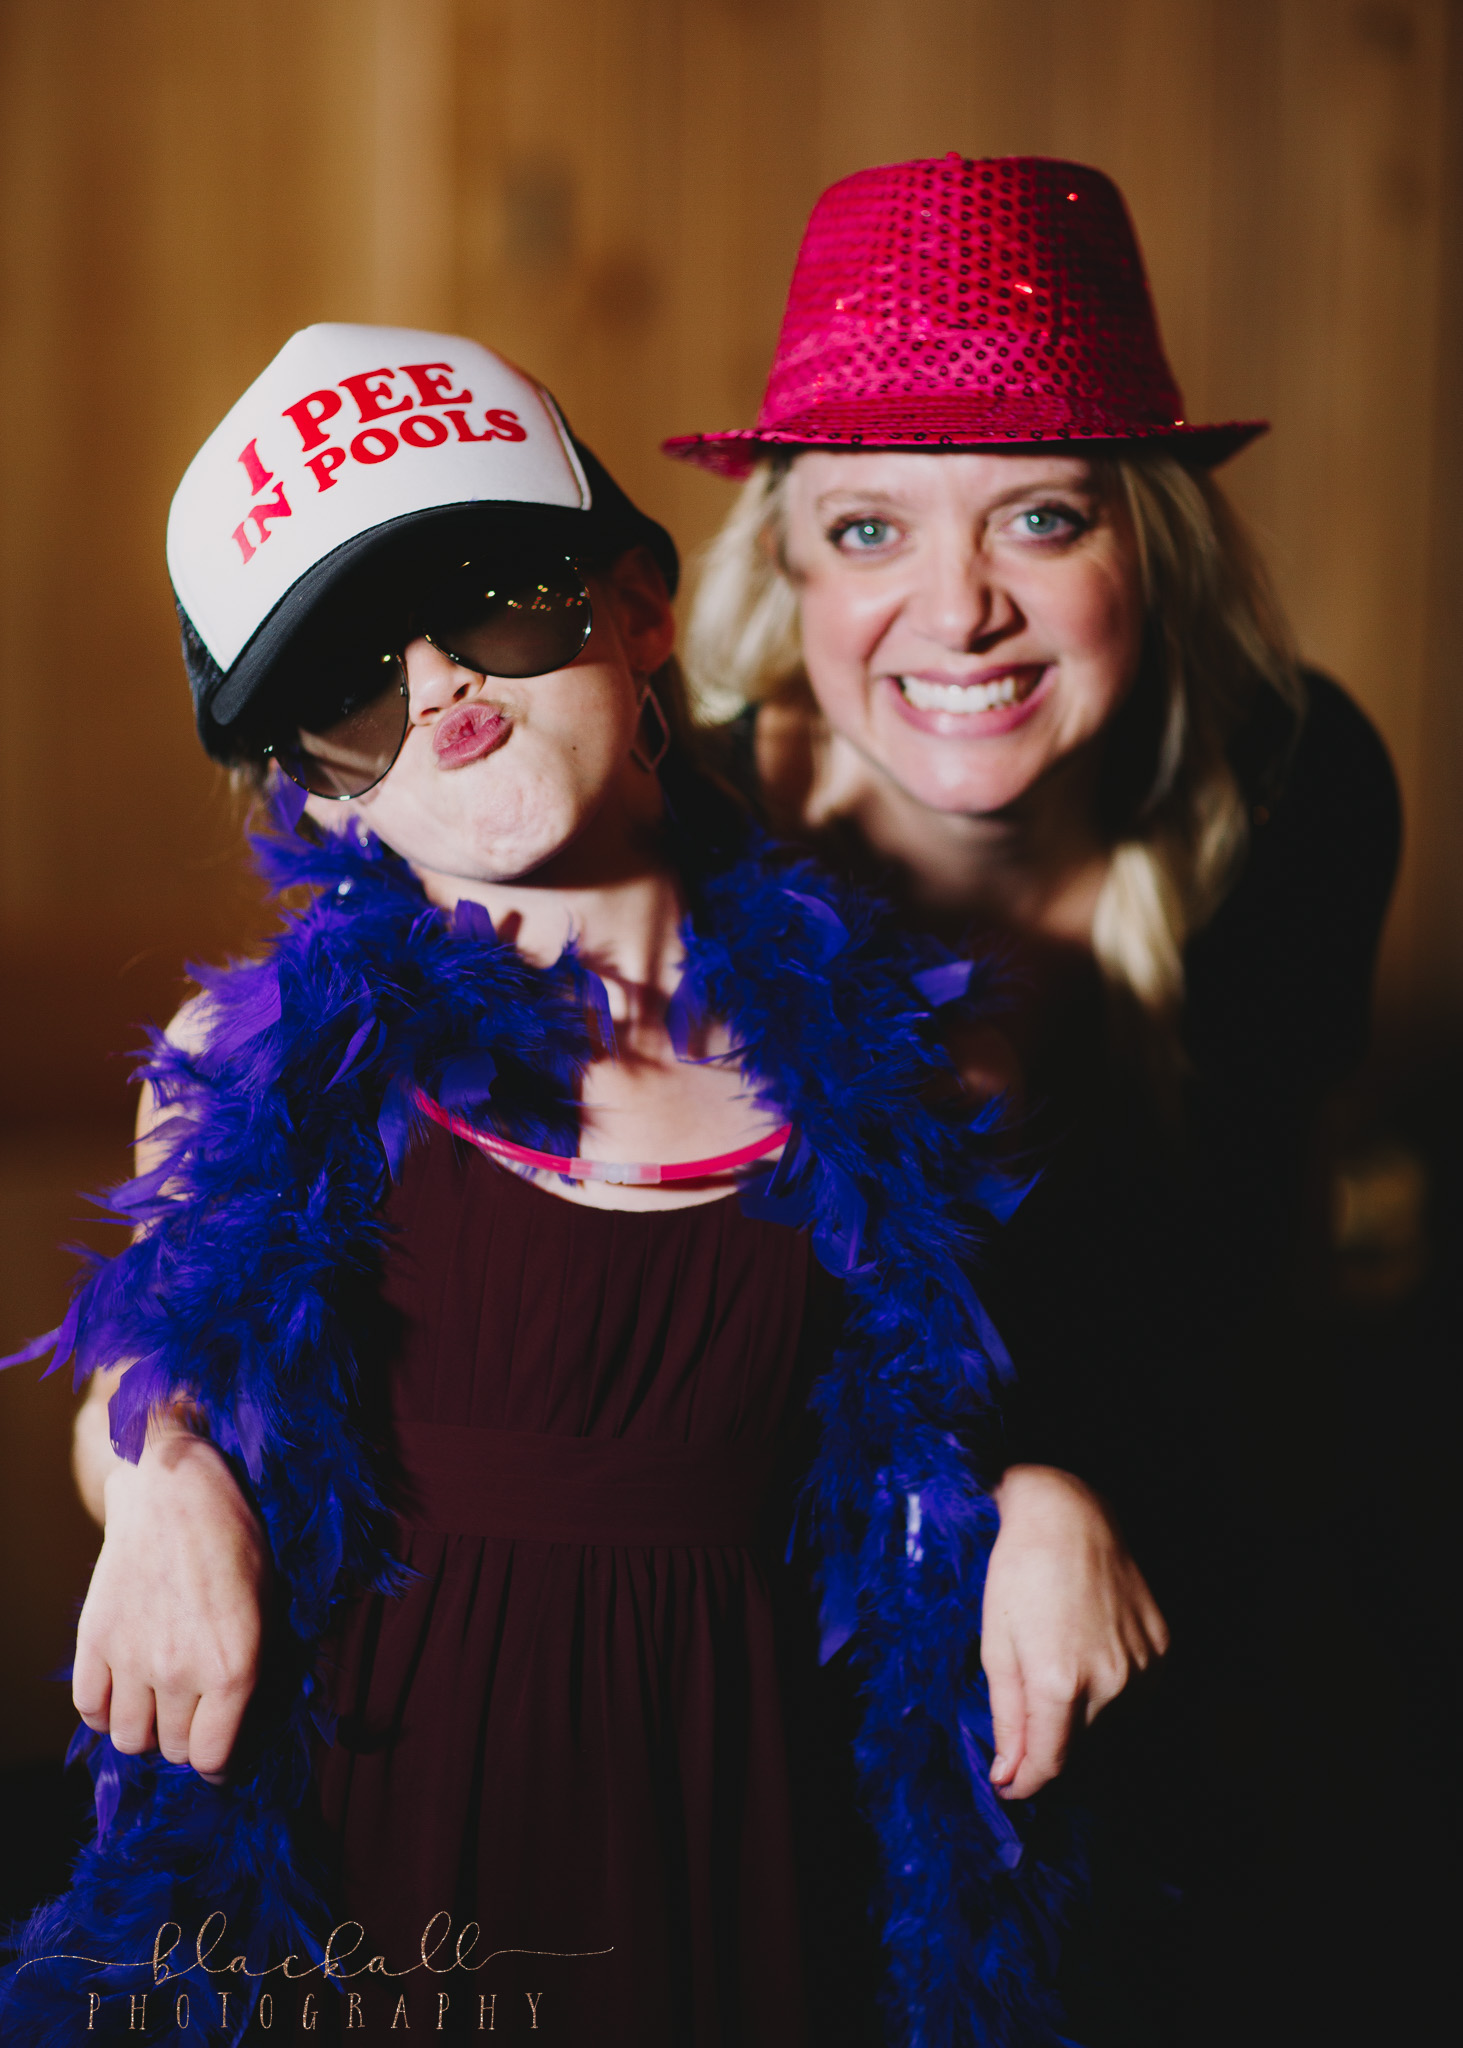 Me + my girl Avery! I've been photographing her since she was itty bitty!! ;)